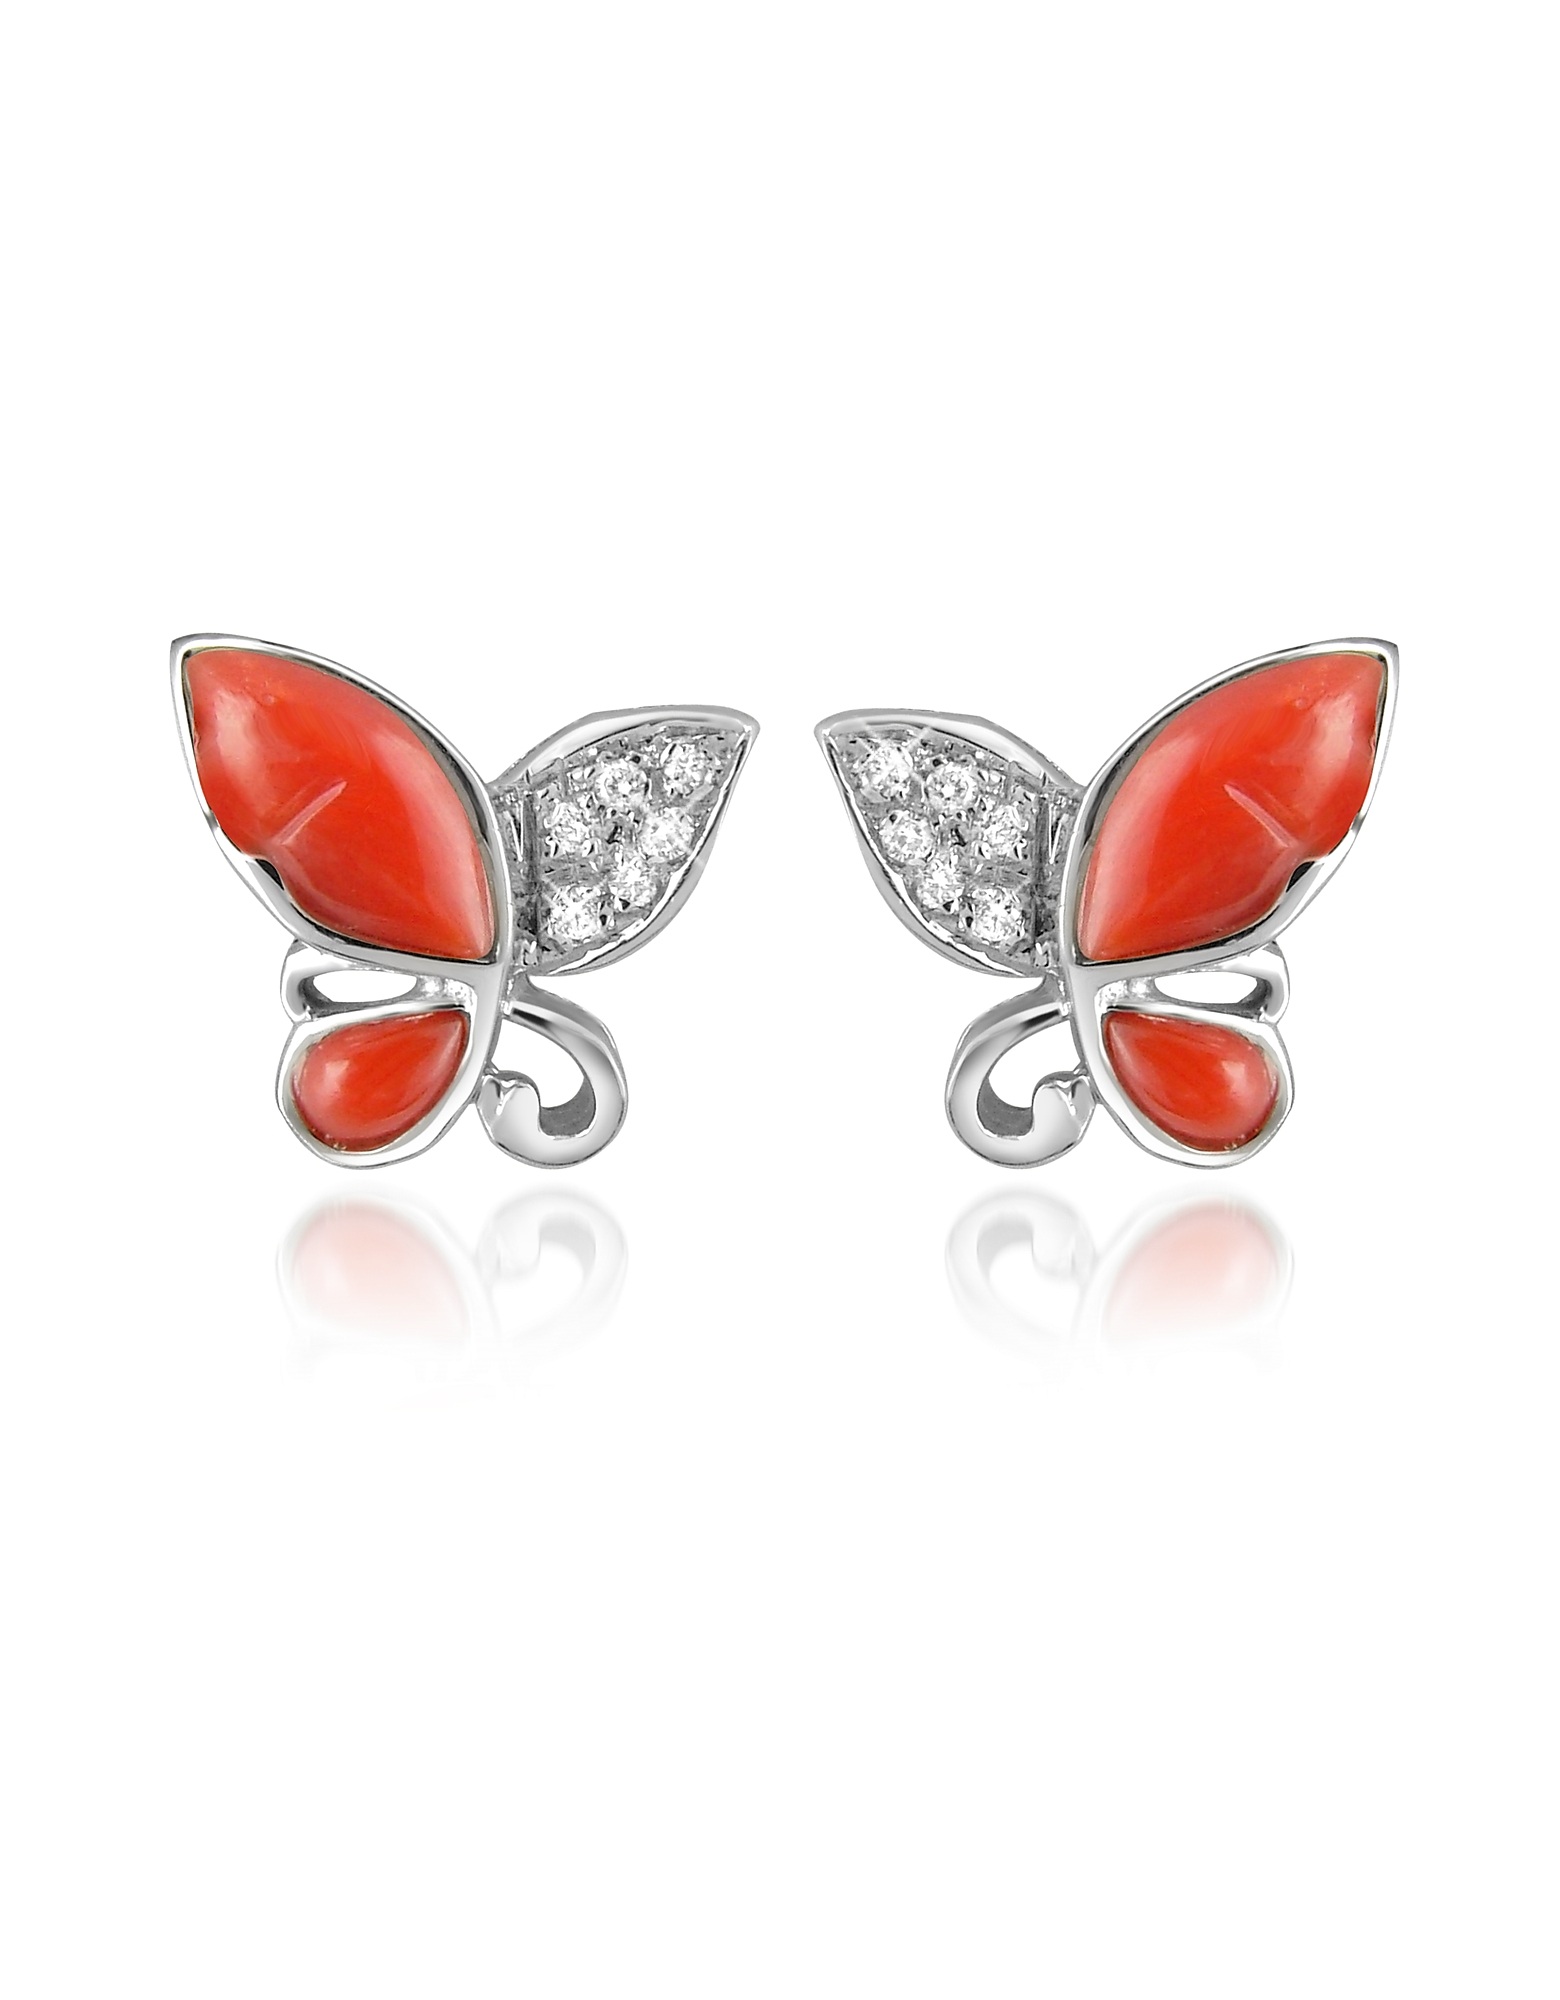 Del Gatto Earrings, Diamond Gemstone Butterfly 18K Gold Earrings